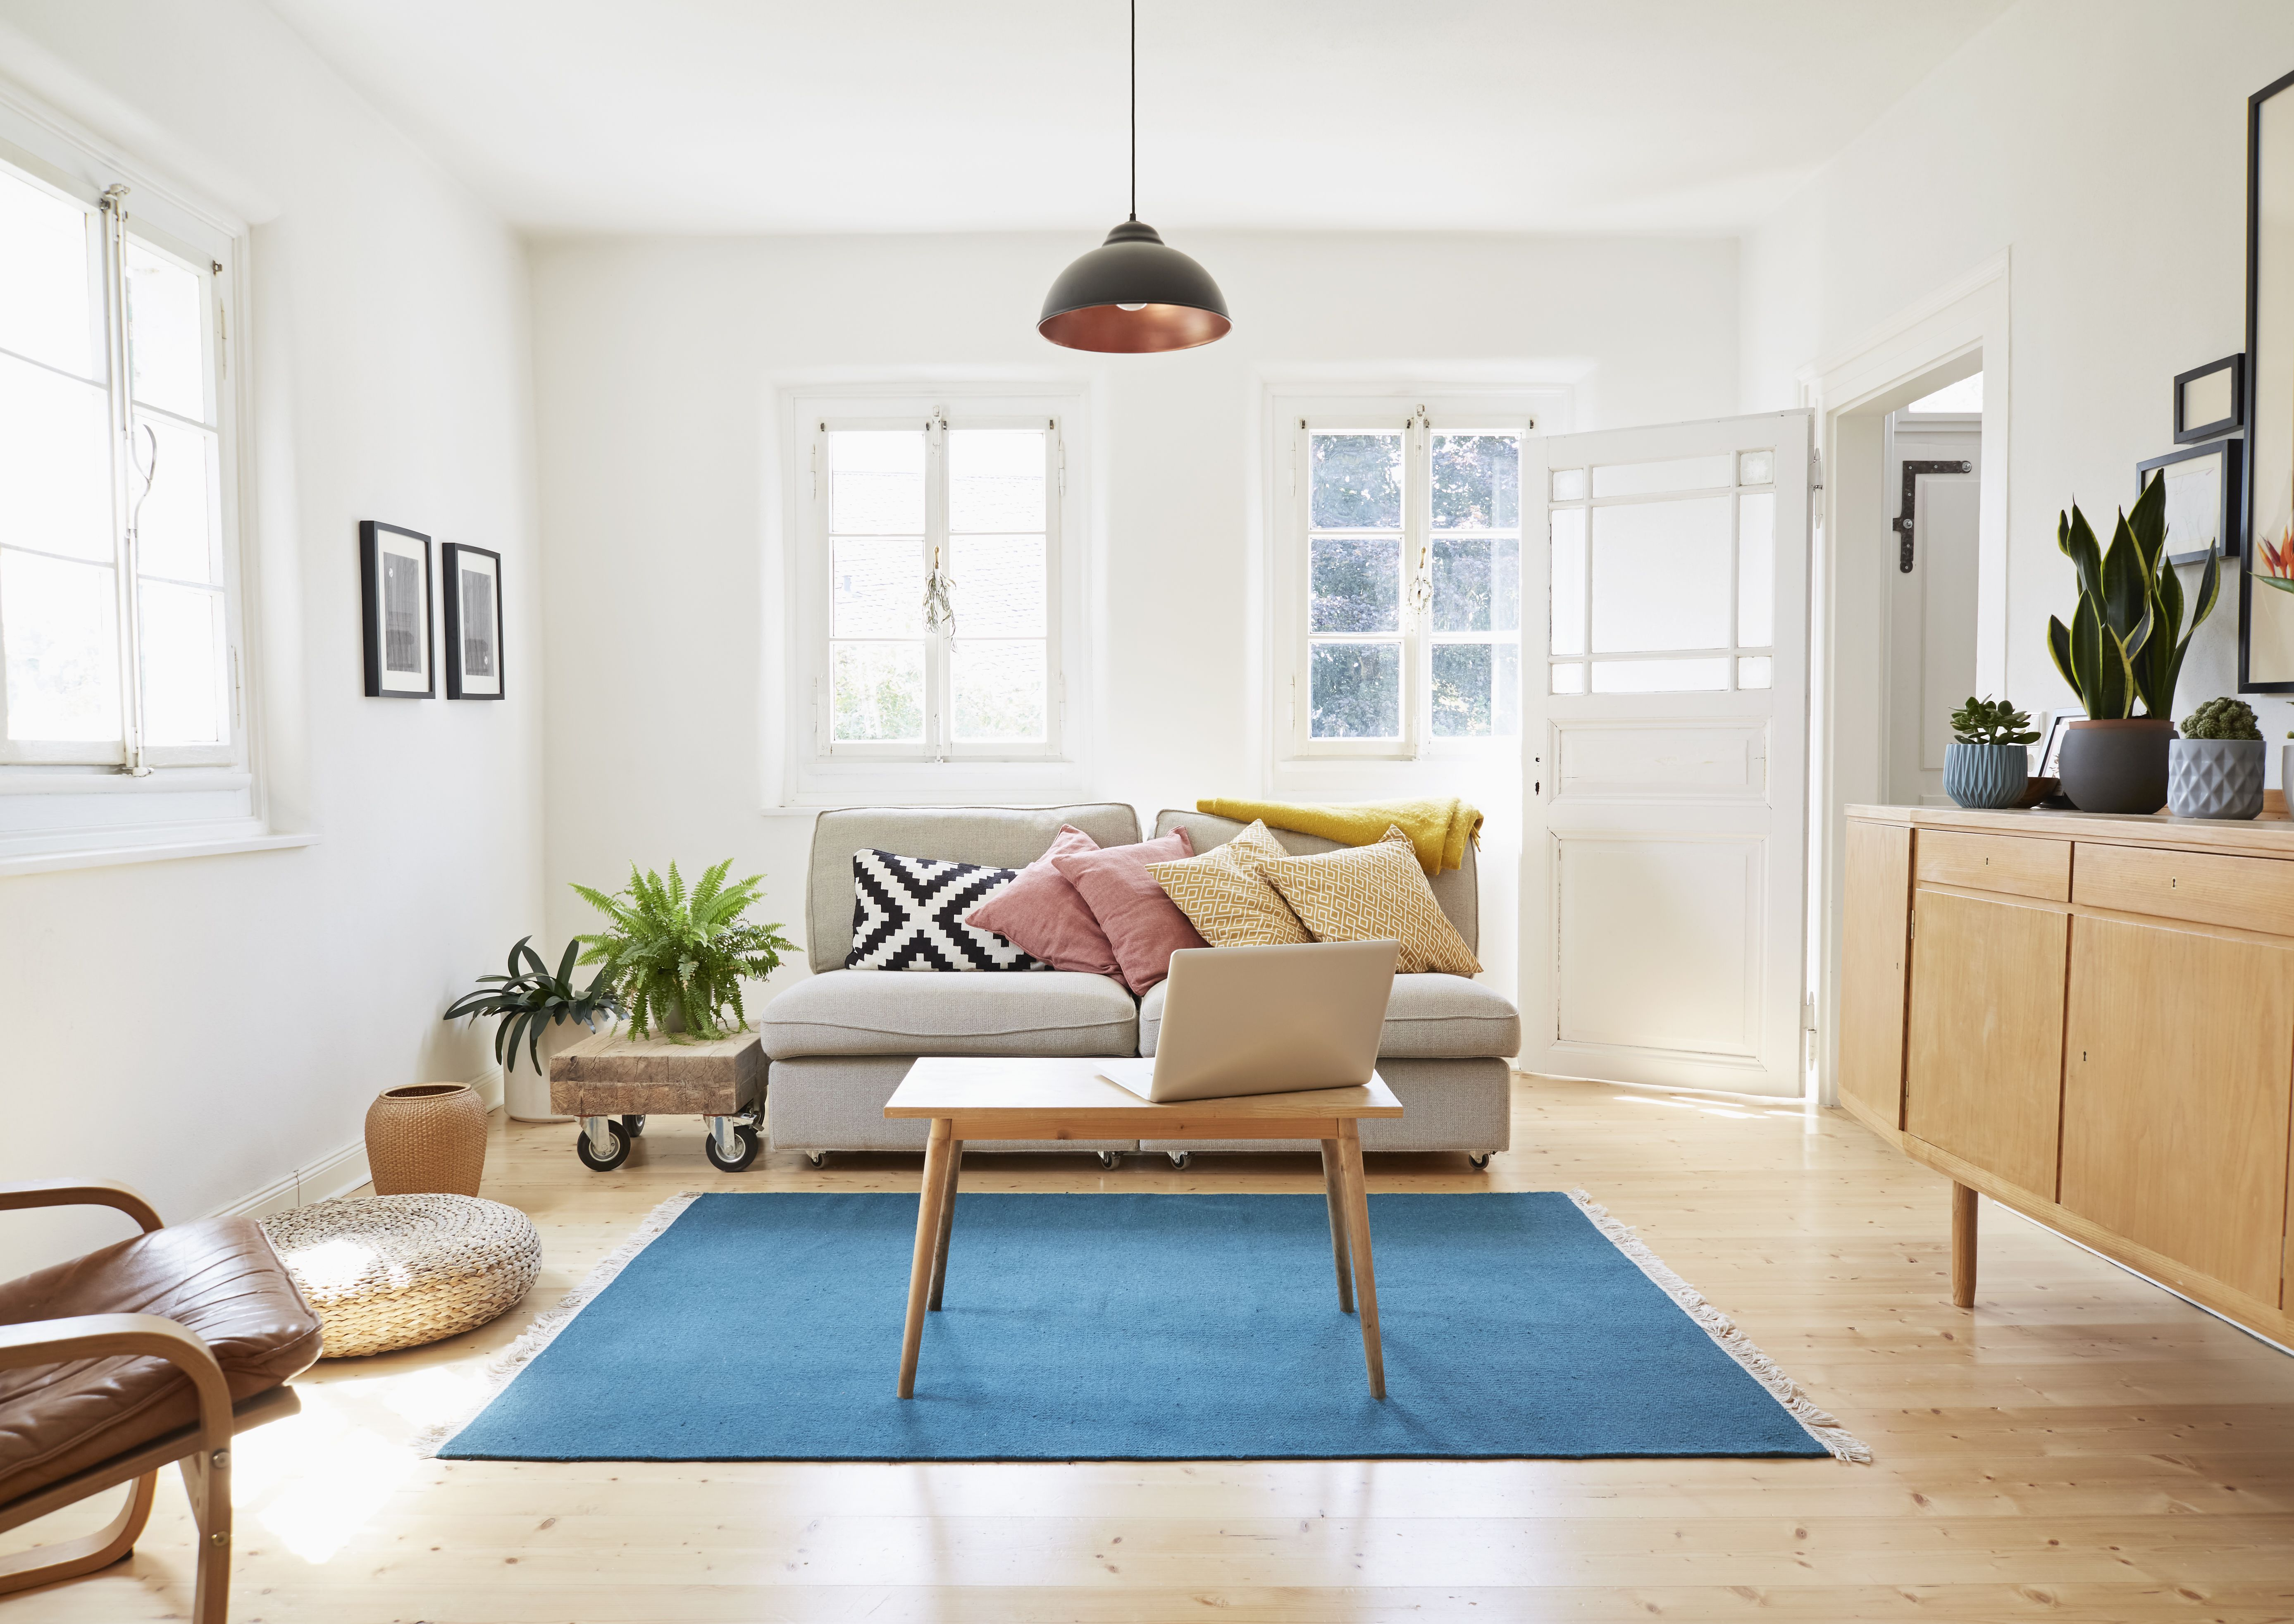 7 best ways to increase natural light in your home